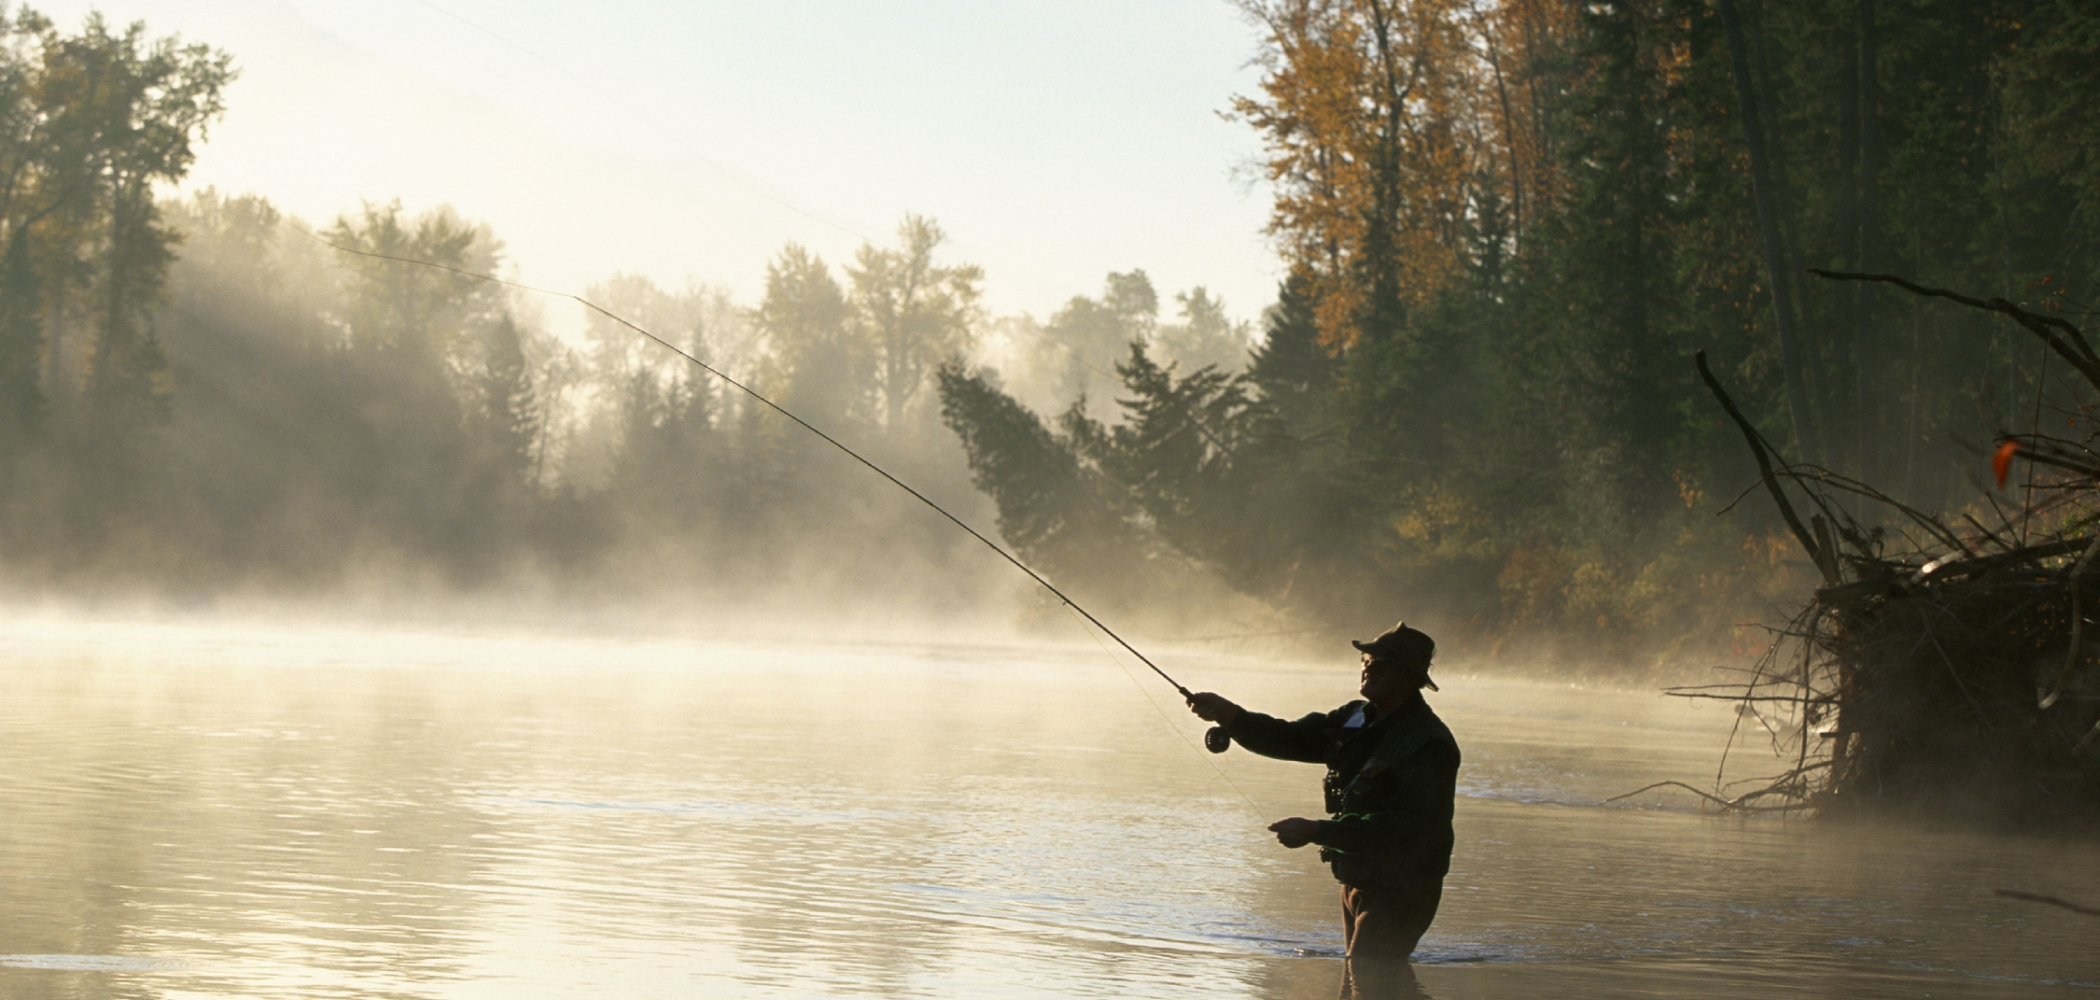 Man fly fishing in the mist on the Elk River near Fernie.